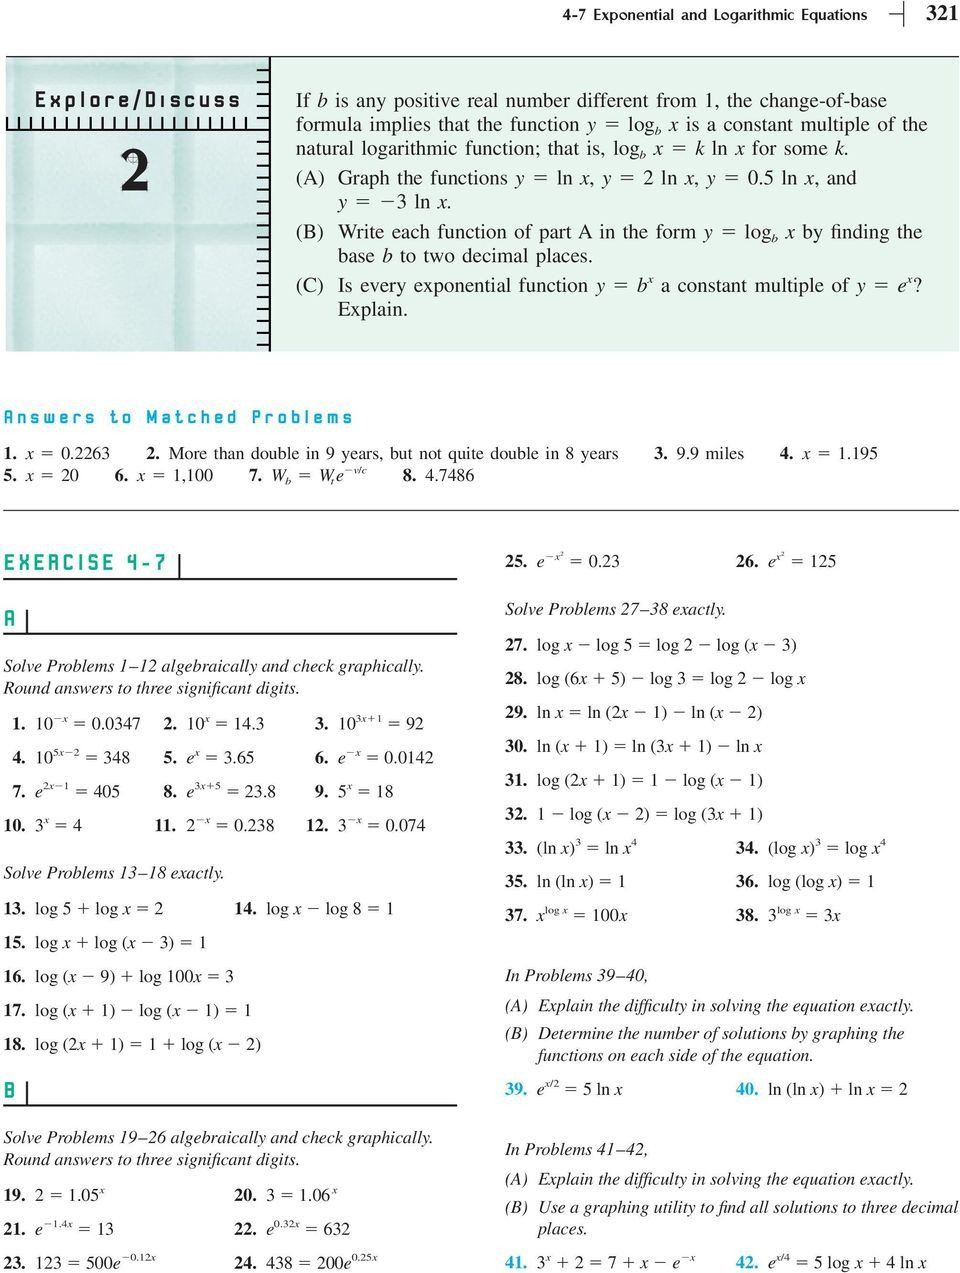 Logarithmic Equations Worksheet With Answers Section 4 7